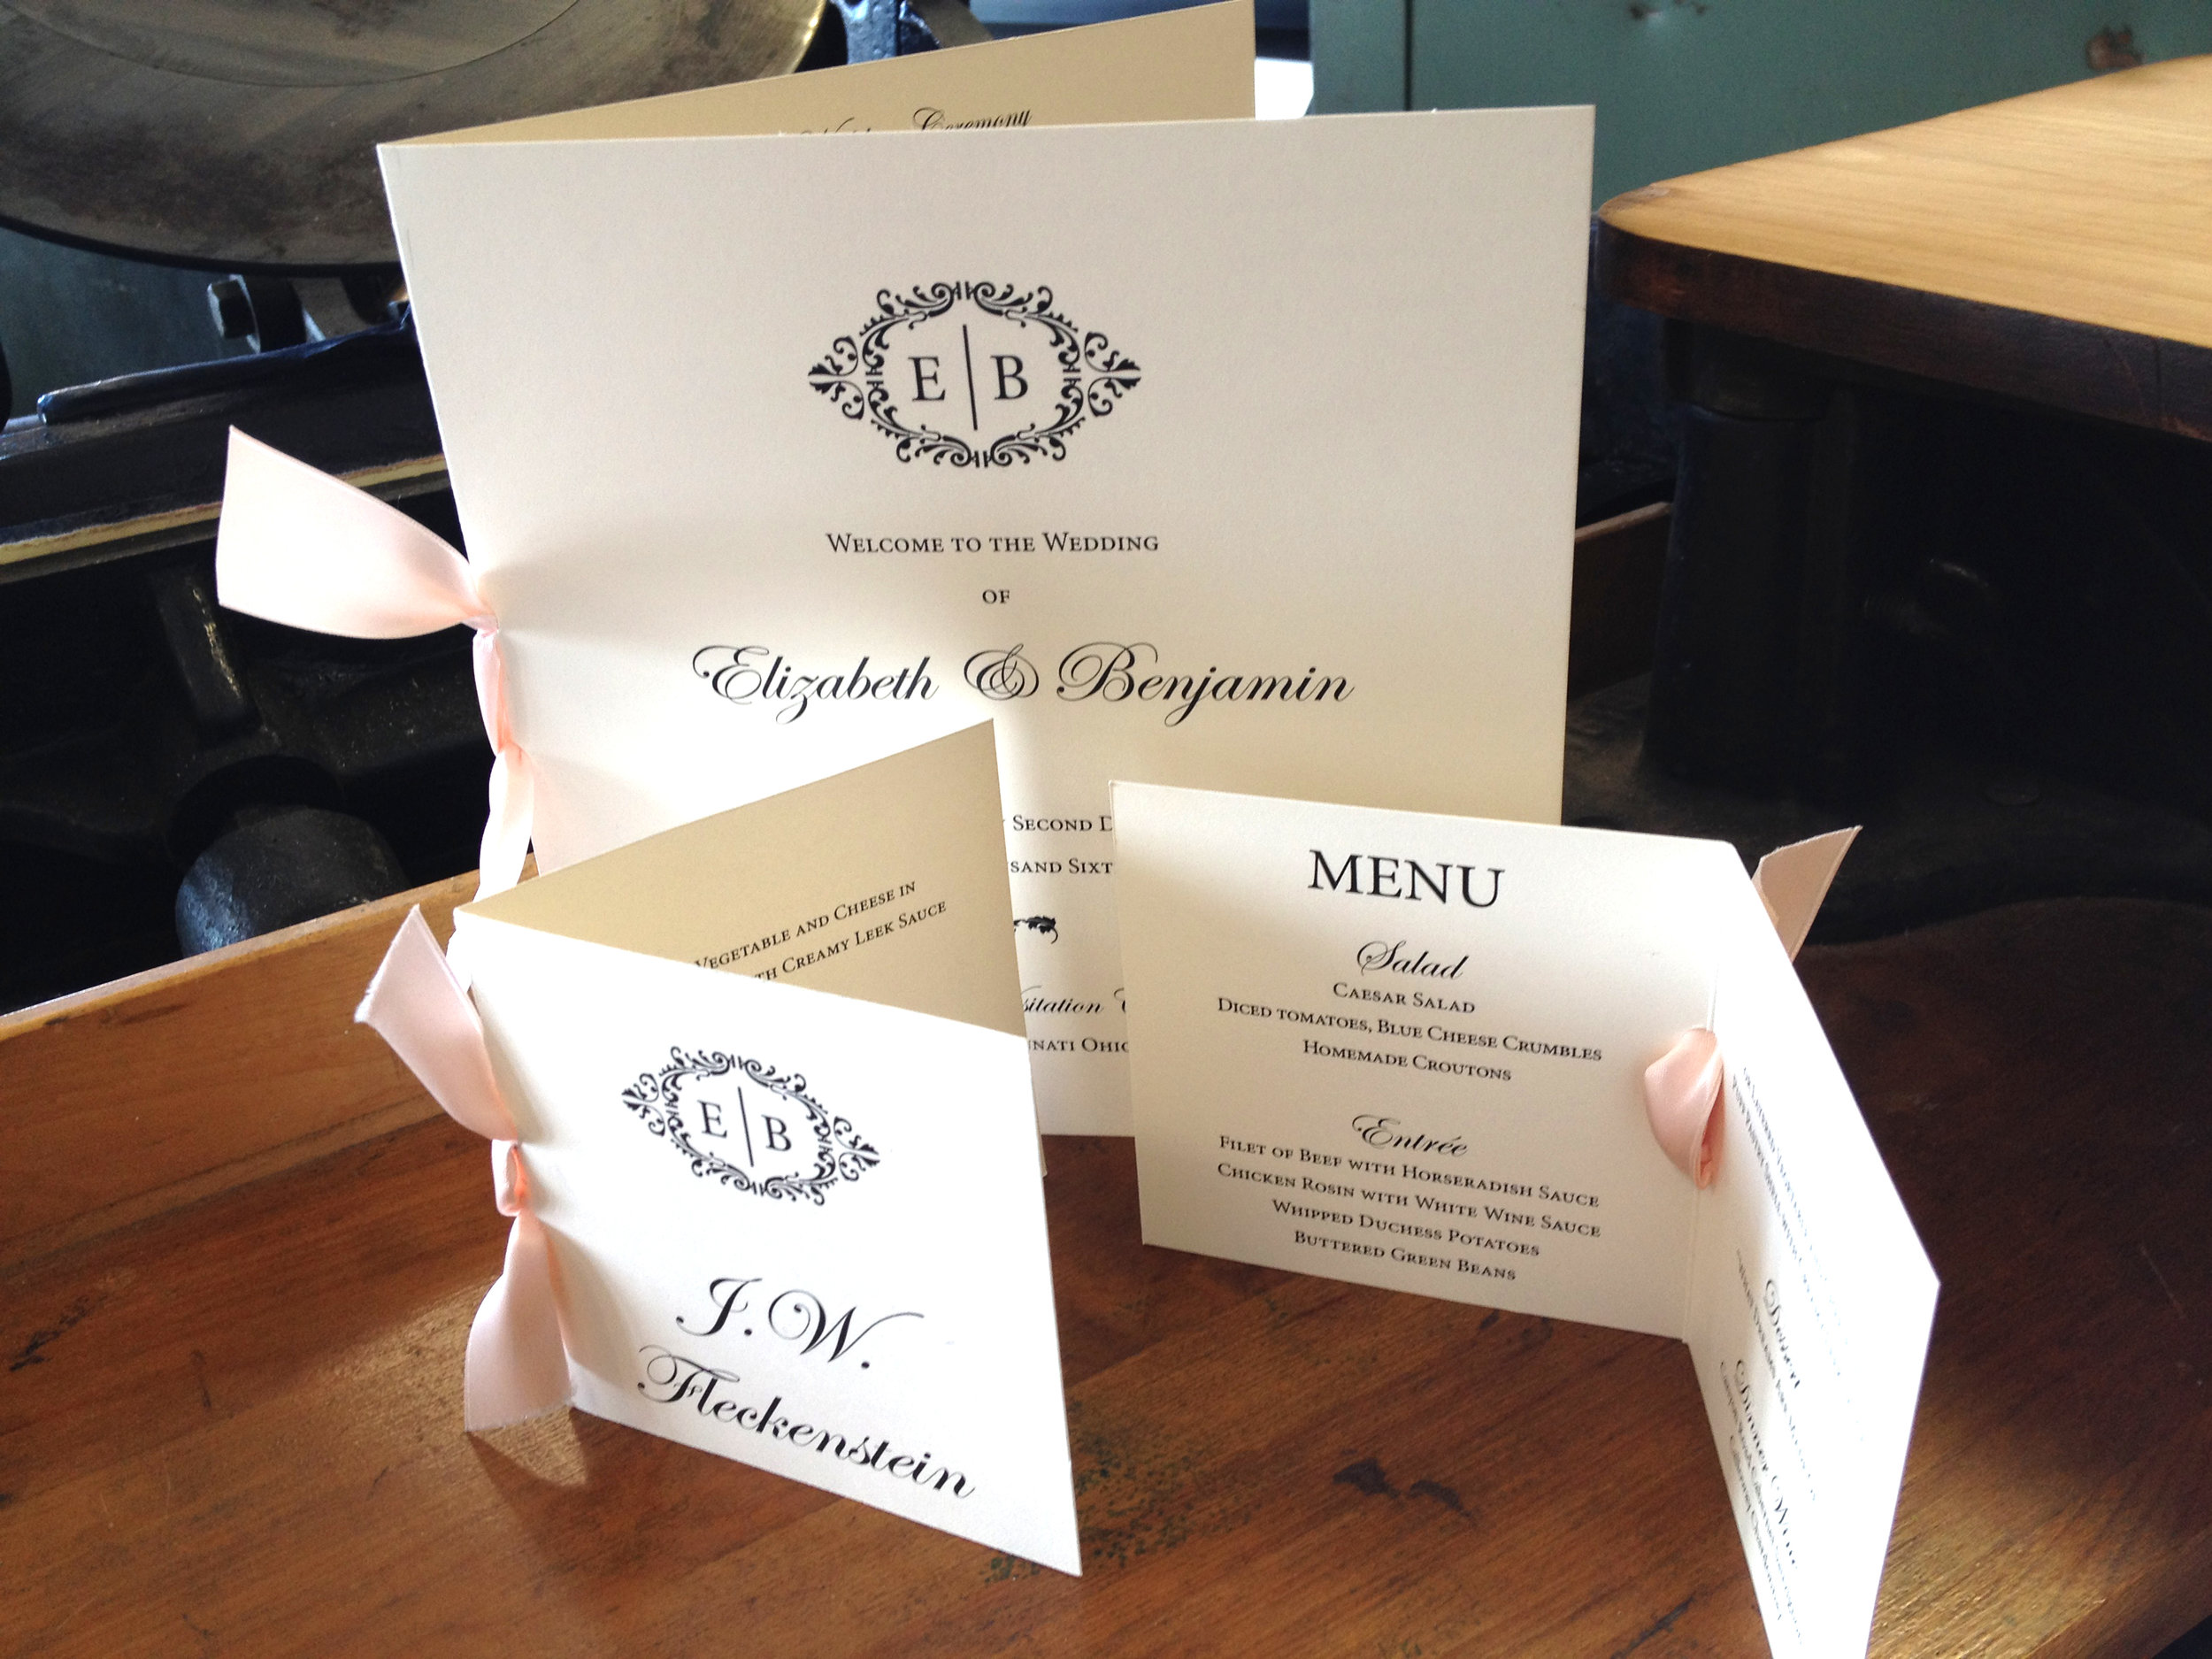 wedding-day of-menu-program-ribbon-custom.JPG